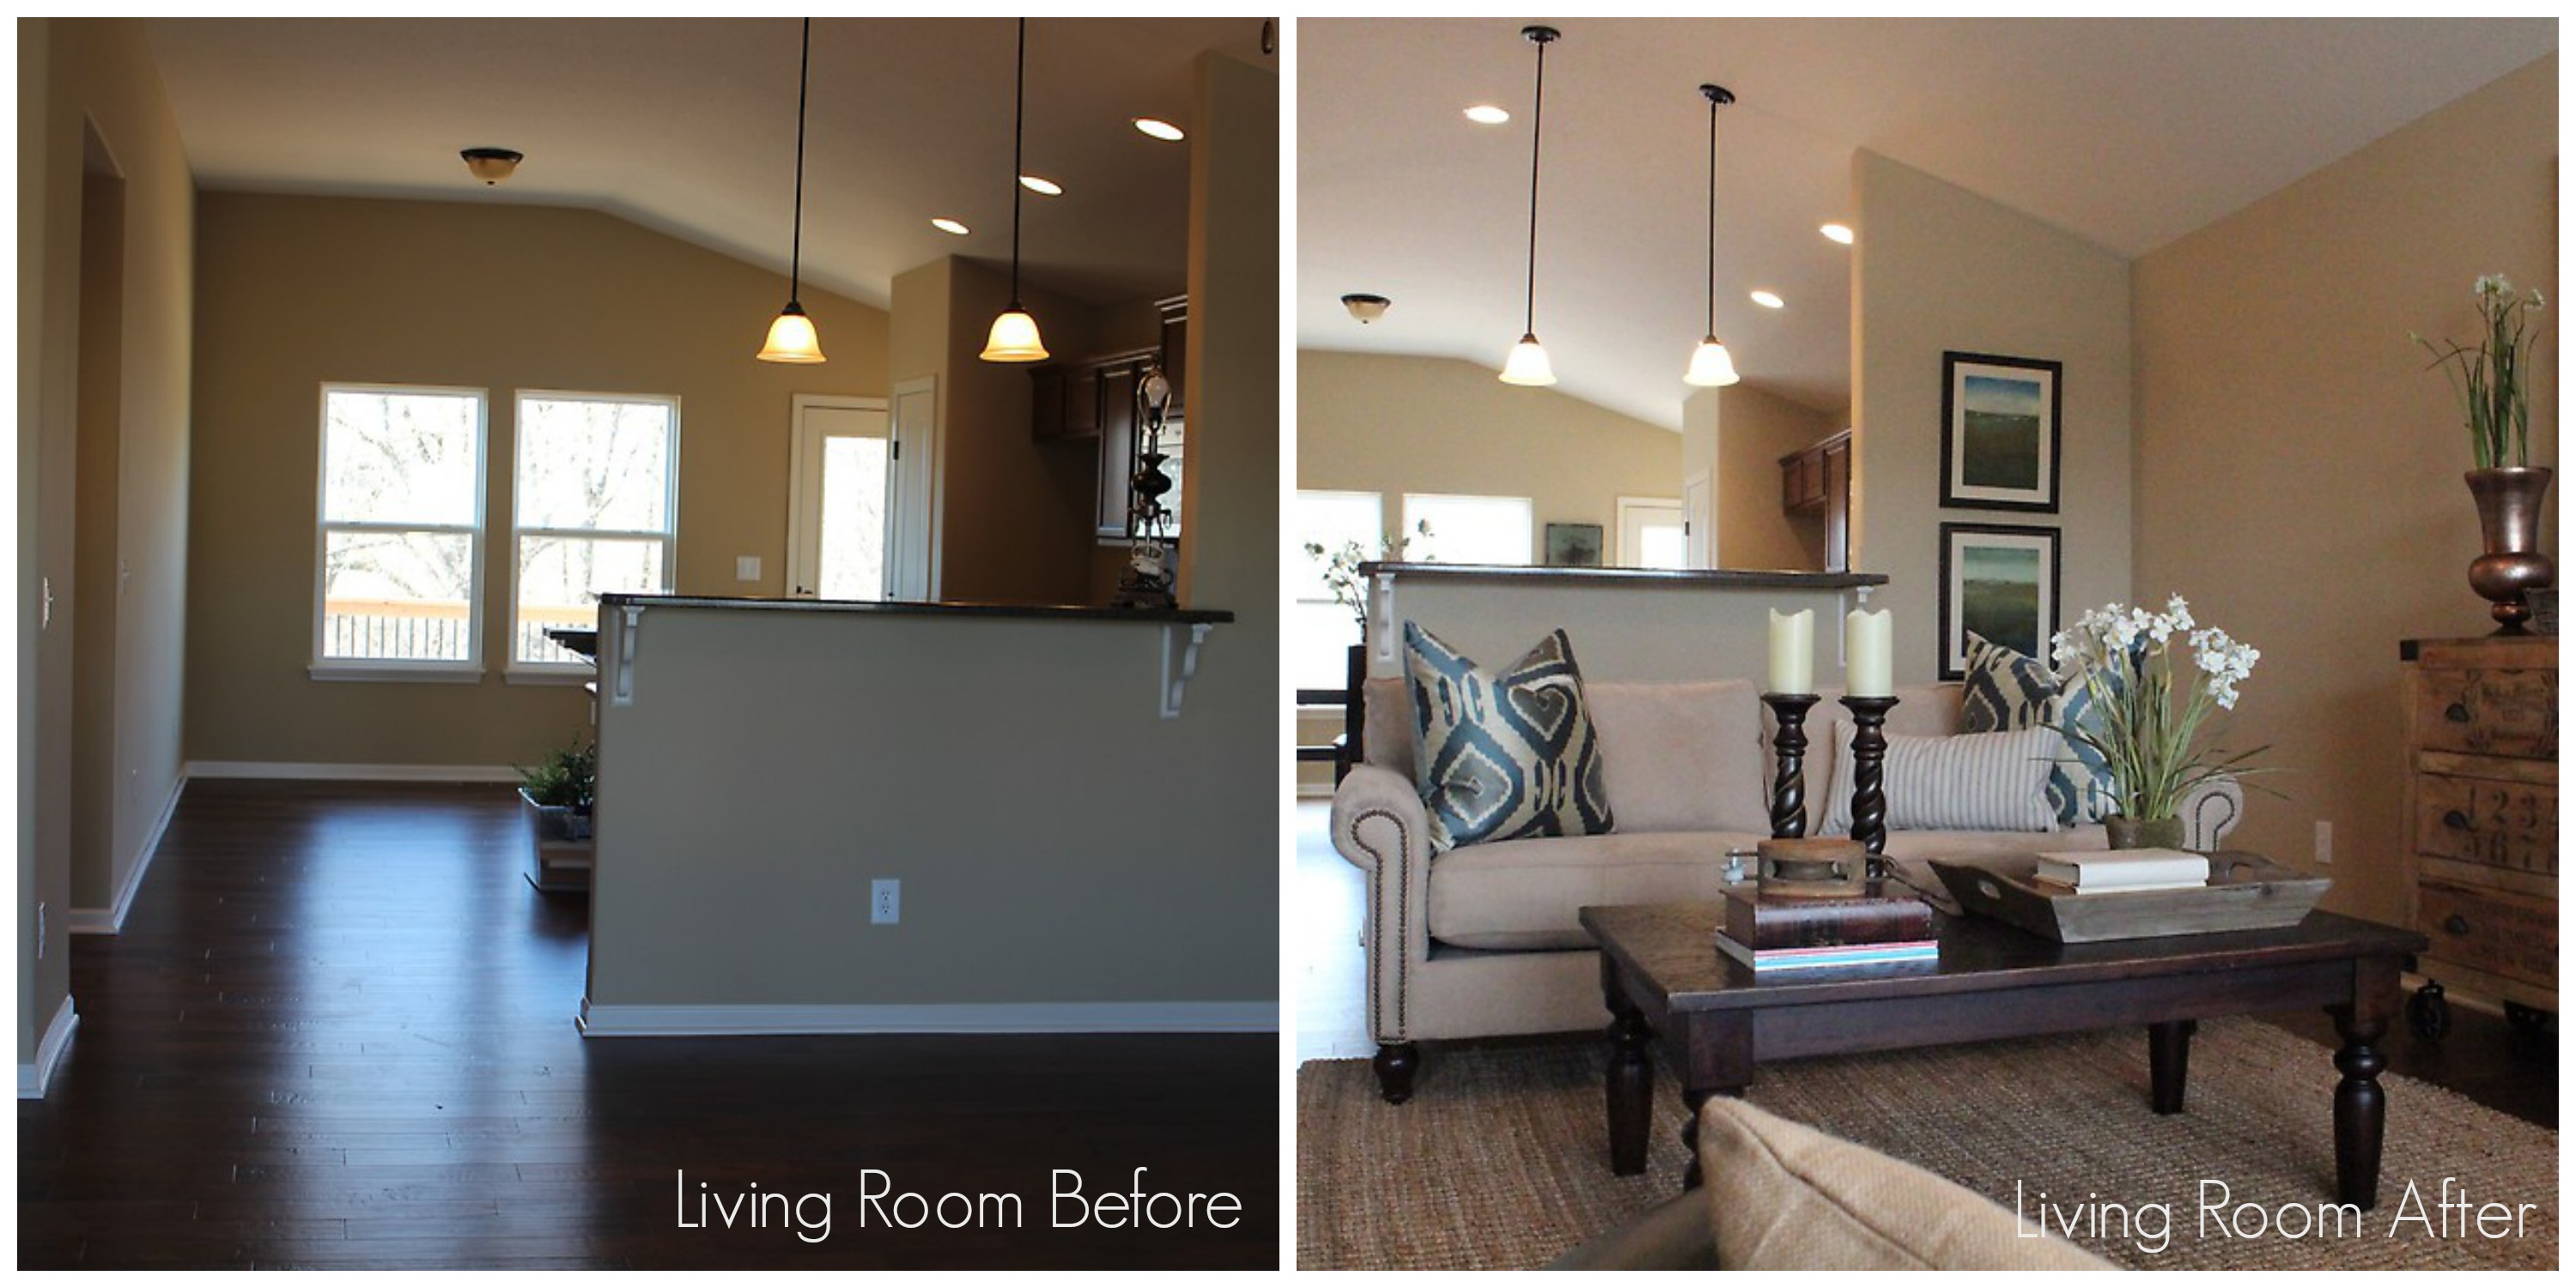 Interior design and home staging - Living Room3 Before After